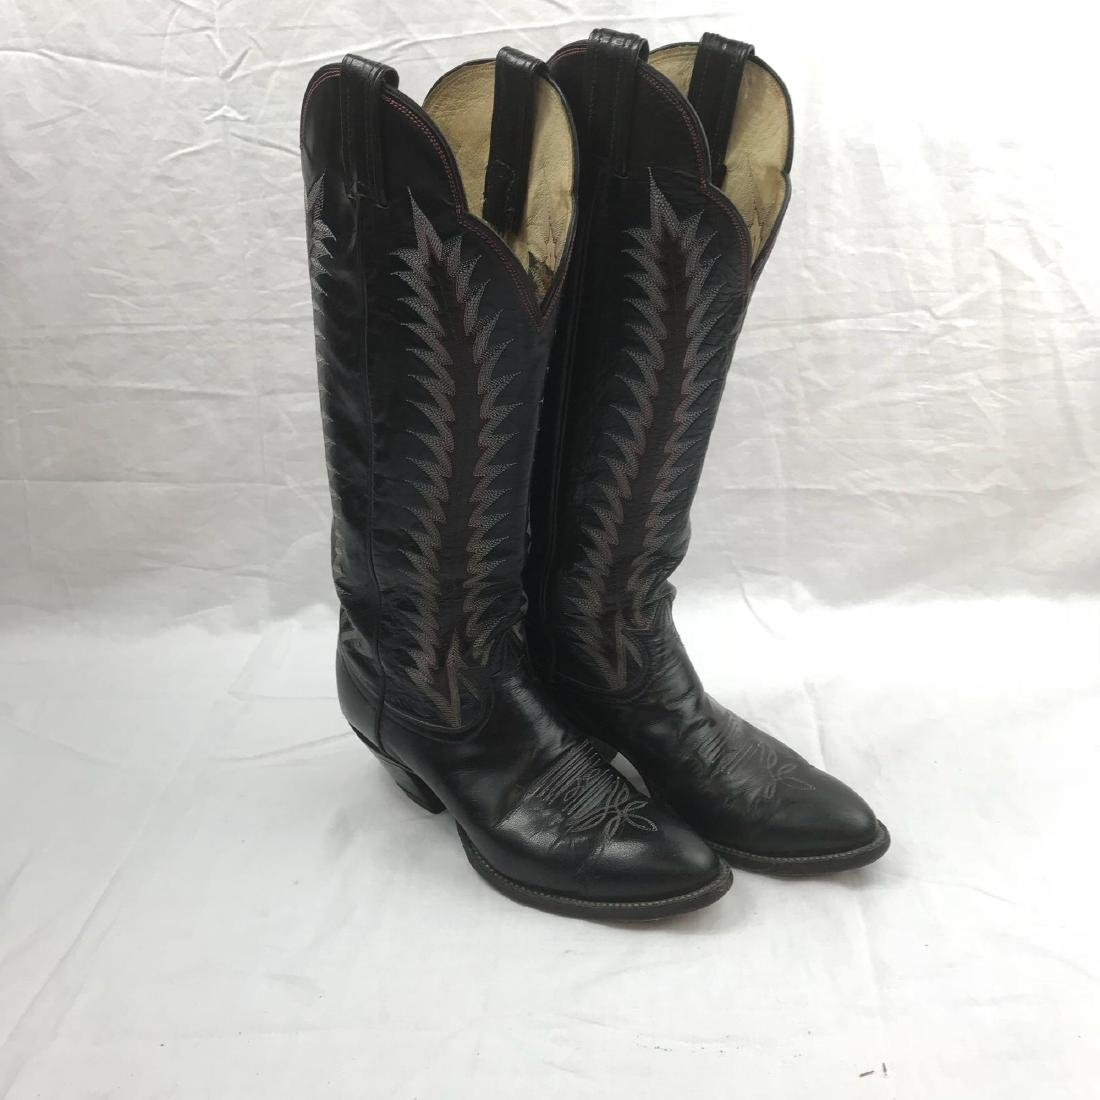 Tony Lama size 8 Cowgirl Boots - 4